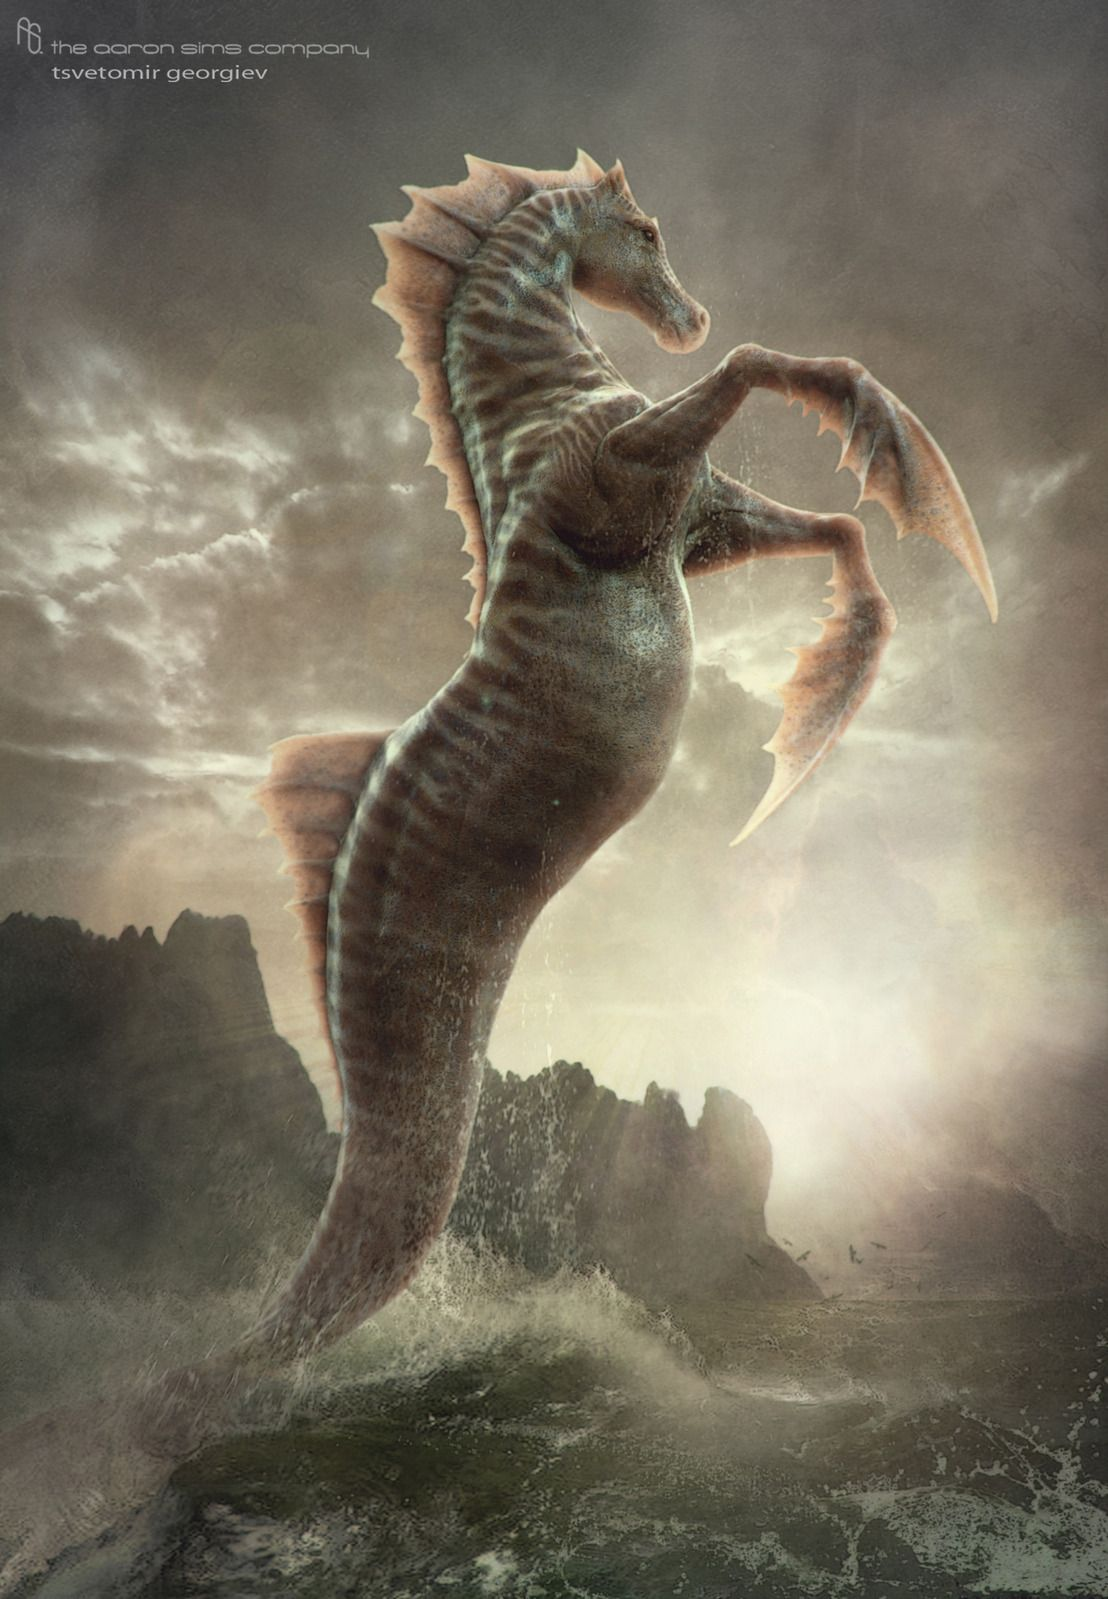 hippocampus percy jackson monsters and movie